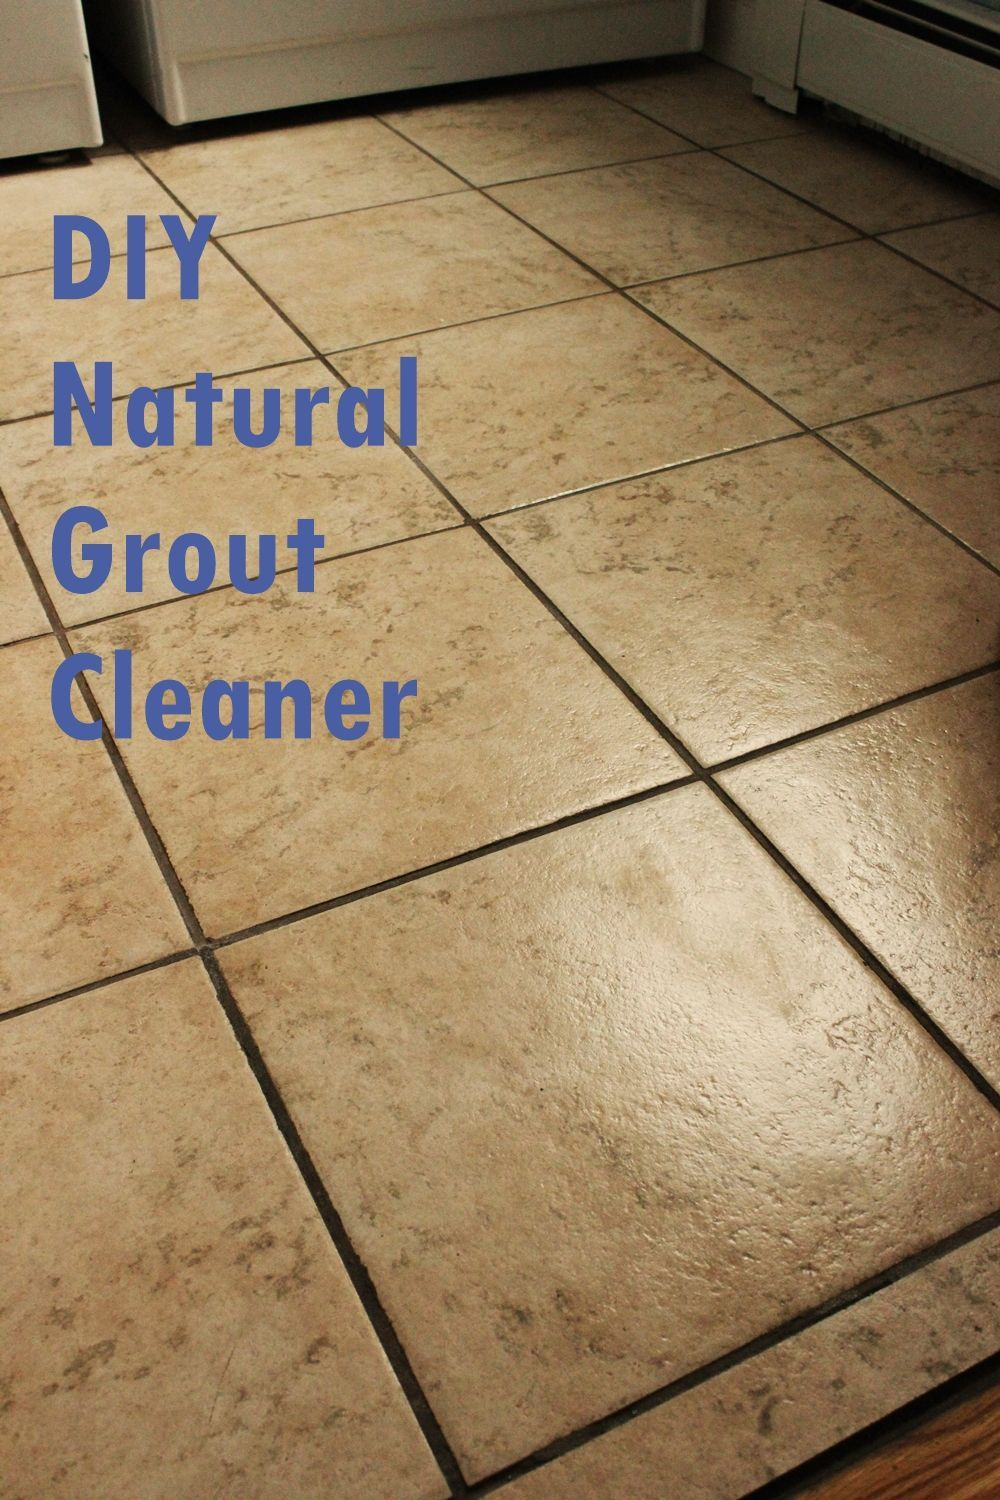 DIY Natural Tile or Grout Cleaner